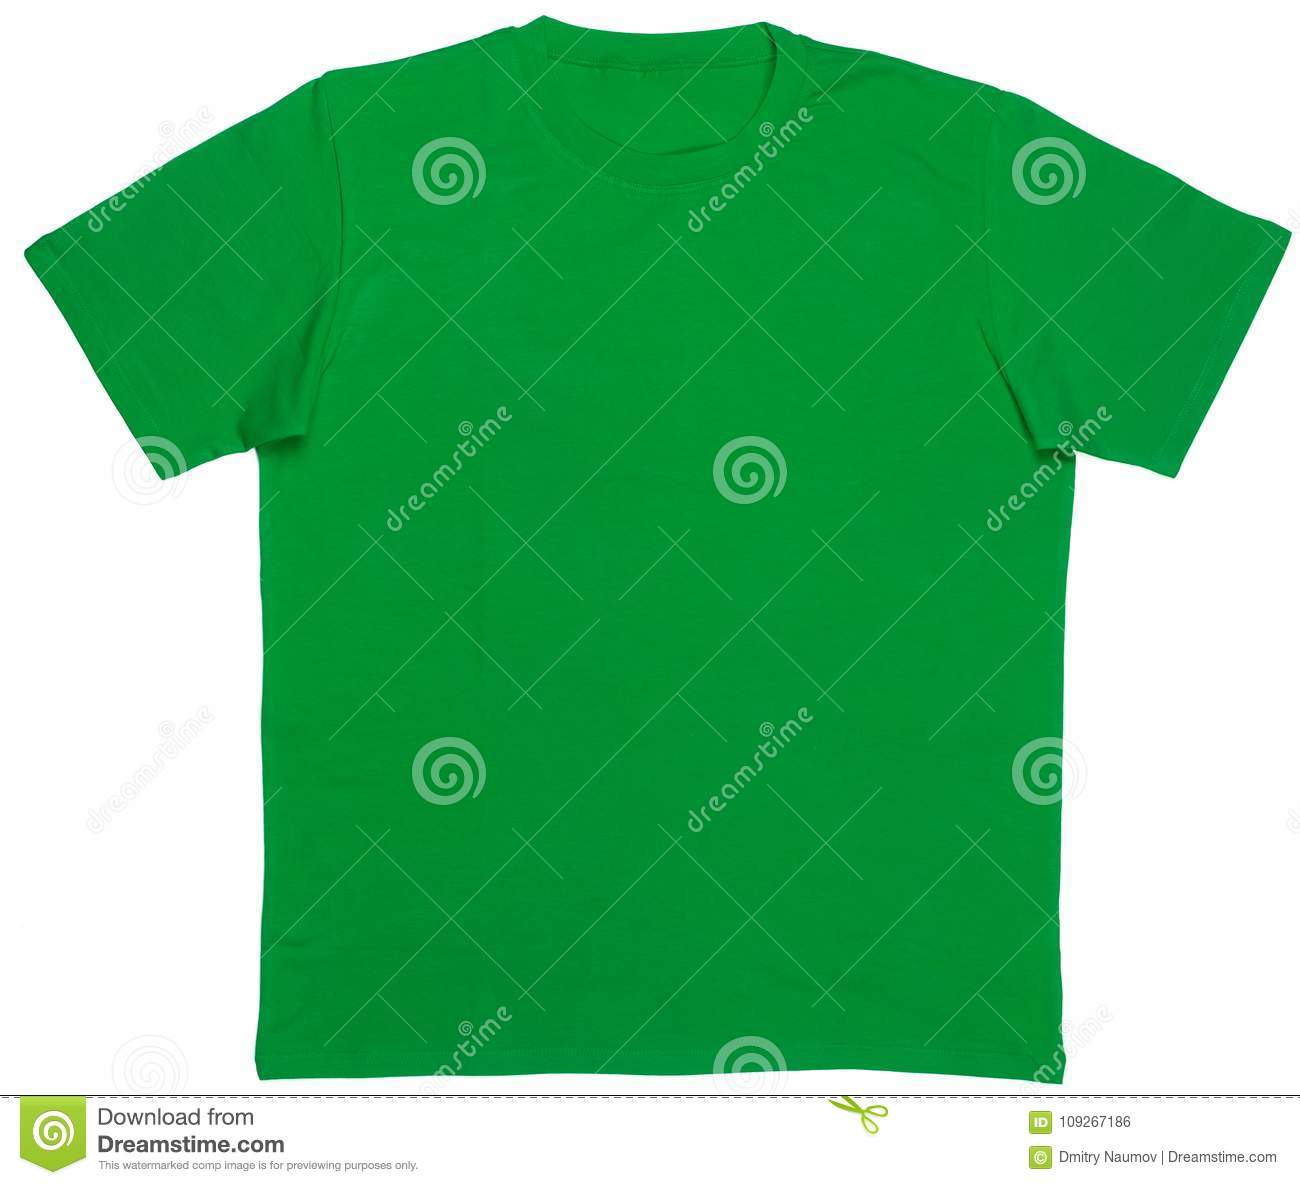 f37219f9c Green plain shortsleeve cotton T-Shirt template isolated on a white  background